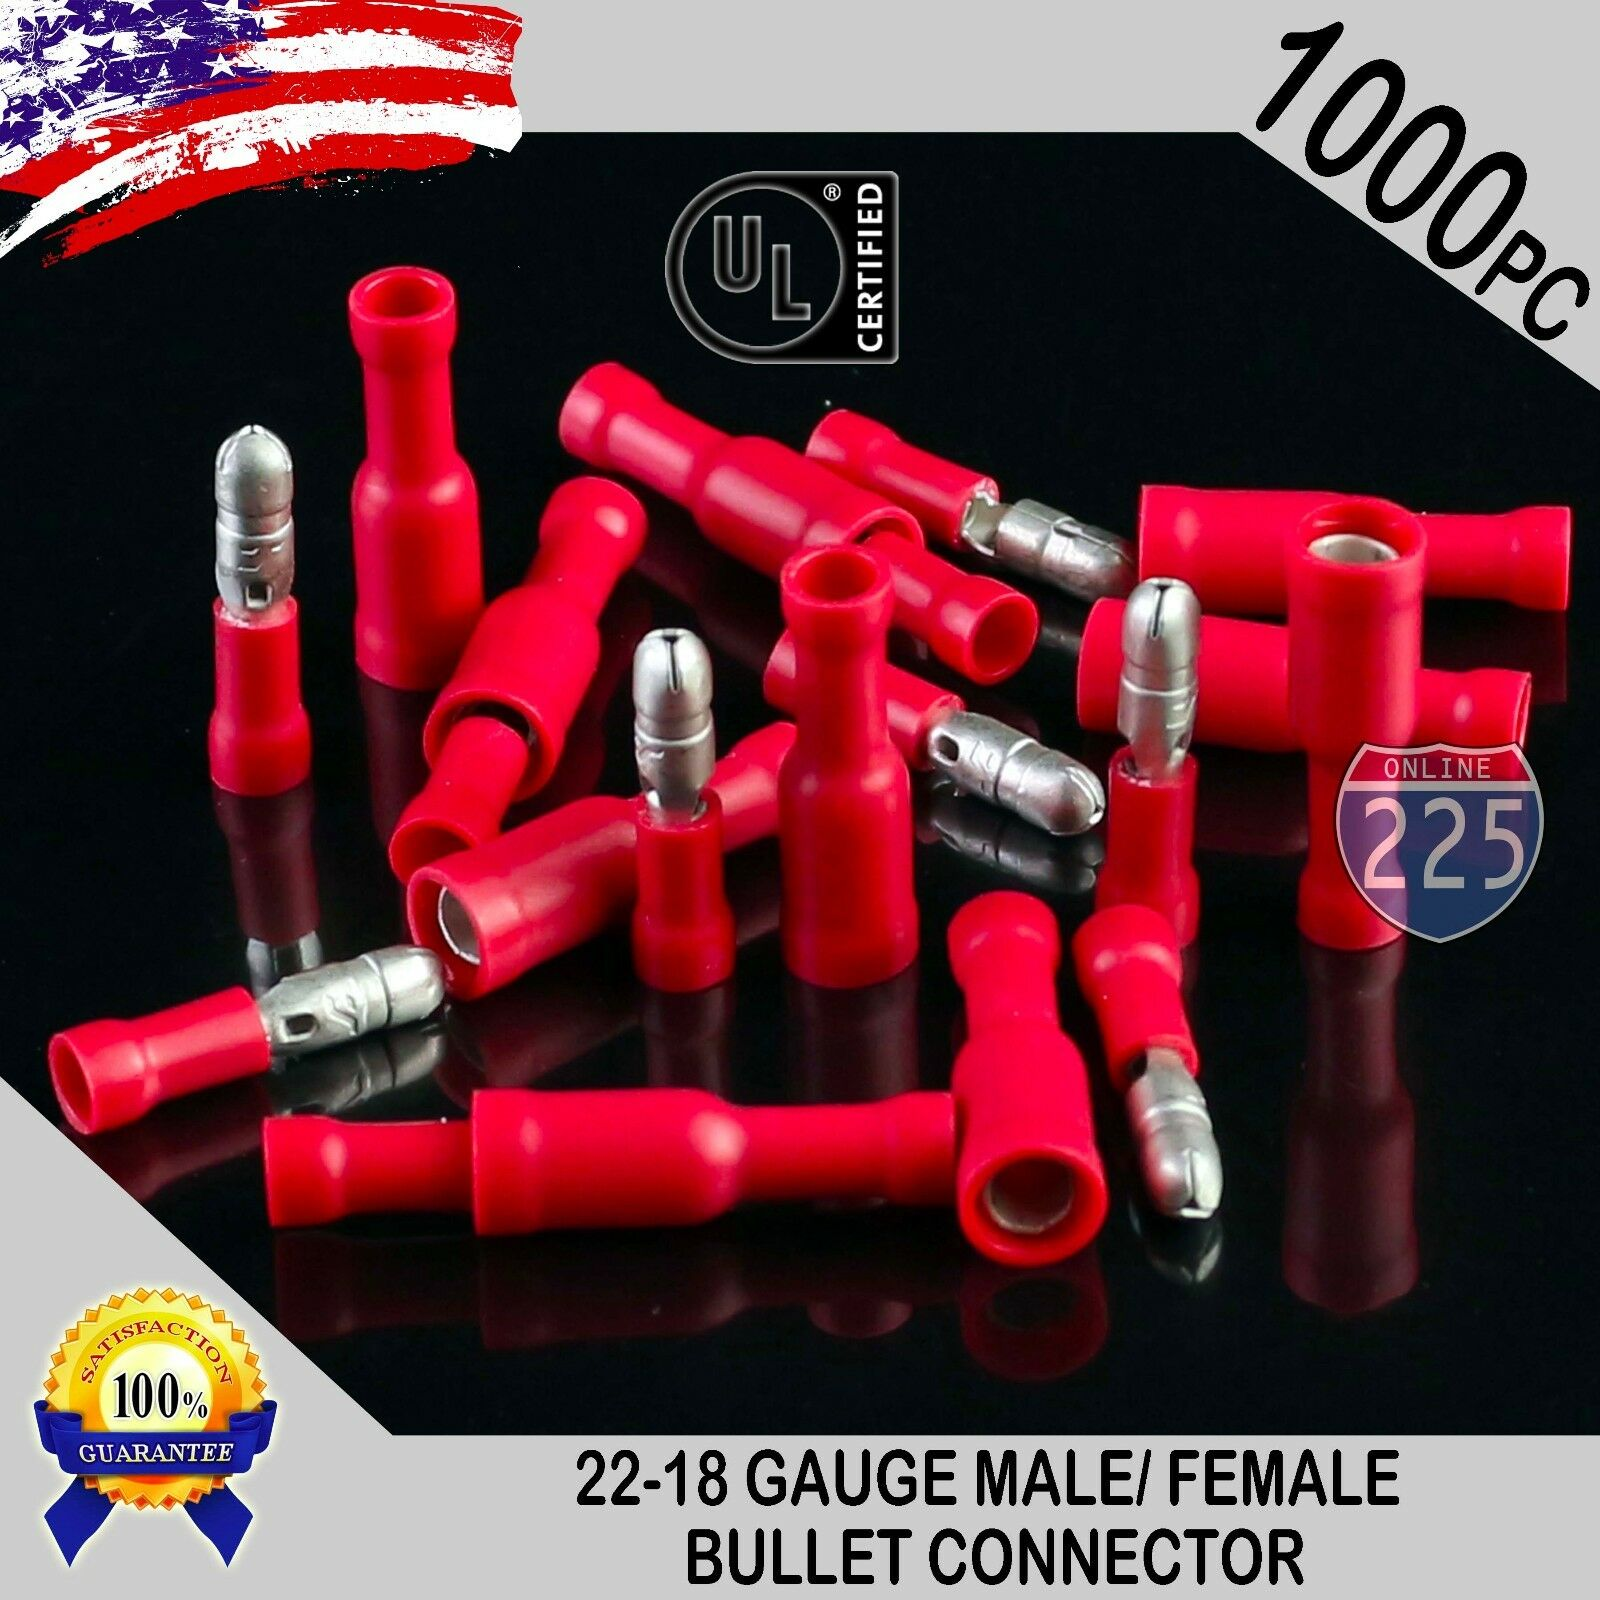 1000 Pack 22-18 Awg Red Male & Female Bullet Connectors I...